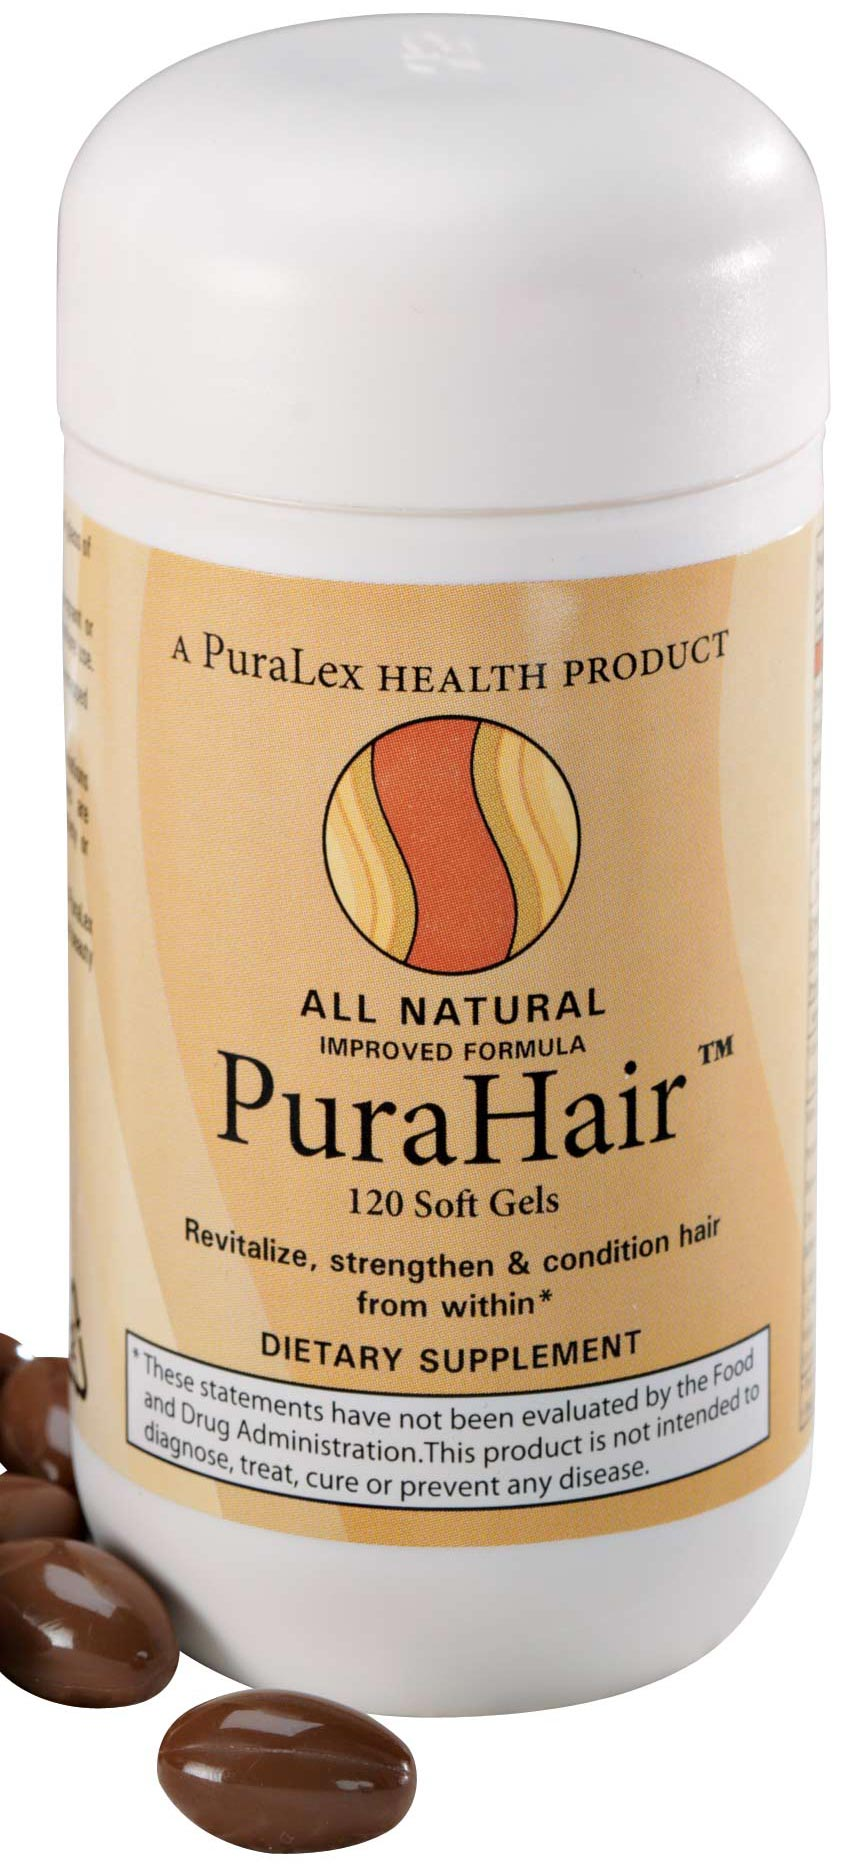 Puralex PuraHair Hair Growth Vitamins - 120 Count All-natural PuraHairTM hair growth vitamins promote thicker, stronger, shinier hair and helps prevent hair loss with amino acids and botanicals. Just take two soft gels daily for healthy-looking hair and to promote natural hair growth. 120 soft gels is a 60-day supply. |||Ingredients Vitamin E, Vitamin B6, Wheat Germ Oil, Panothenic Acid, Biotin, Zinc, Bilberry Extract, L-Methionine, L-Cysteine, Wartercress Leaves Extract, Horsetail Herb.|||Usage Take two soft gels daily, with a full glass of water, before mealtime.